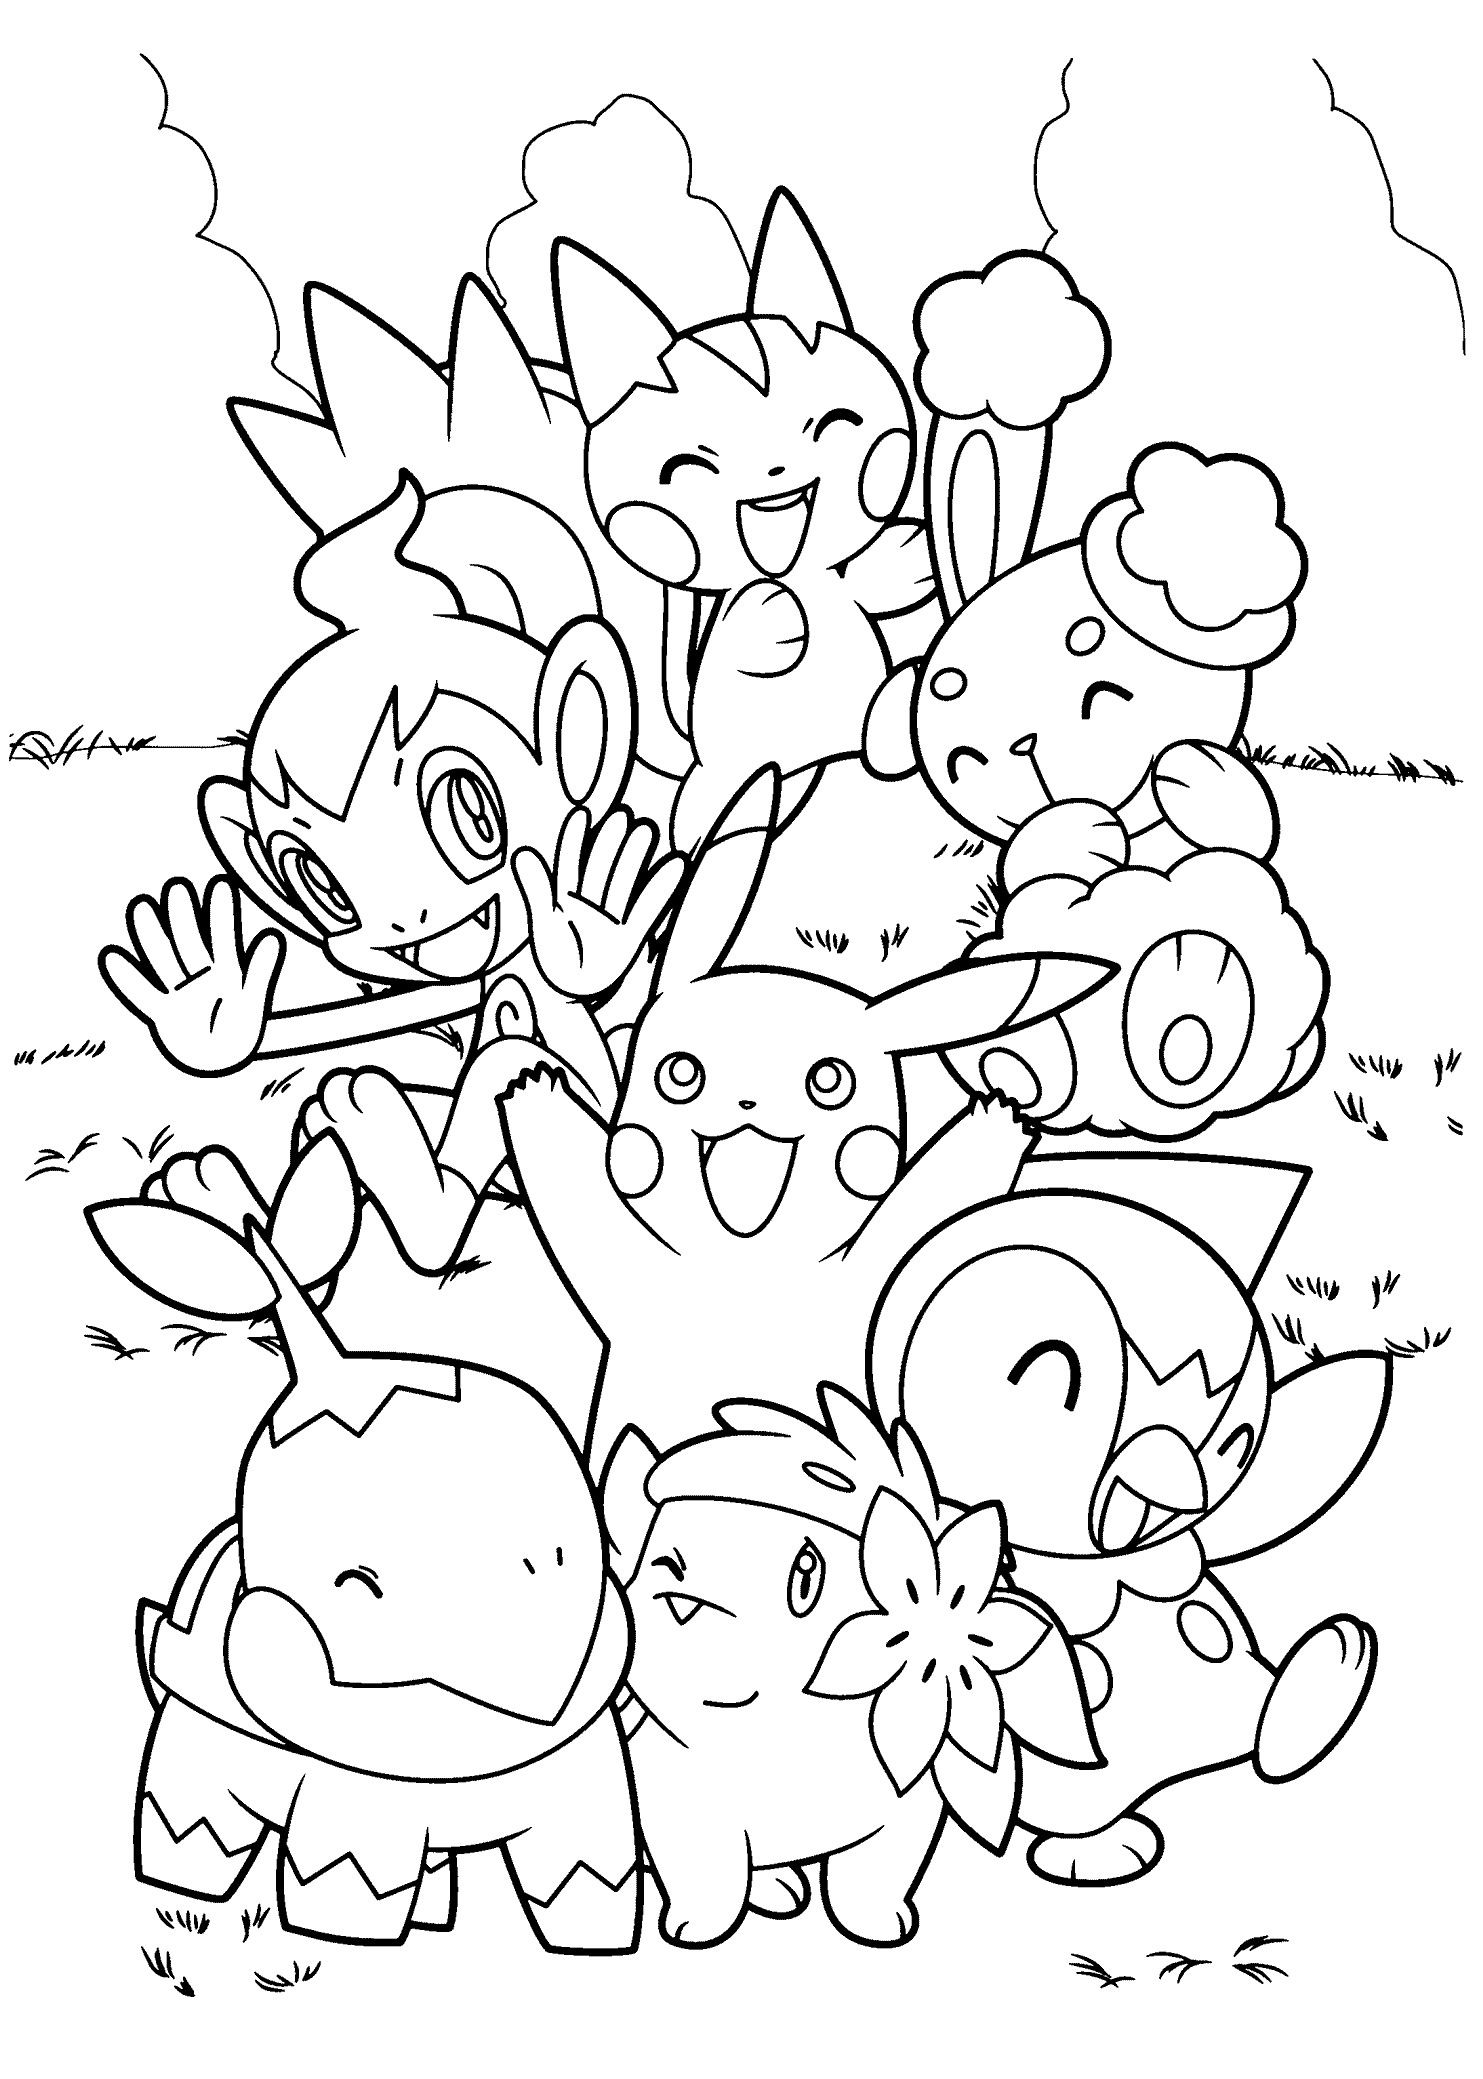 Pokemon Coloring Book Pages Through The Thousand Images On The Web Concerning Pokemon Colorin Pokemon Coloring Sheets Pokemon Coloring Pages Pokemon Coloring